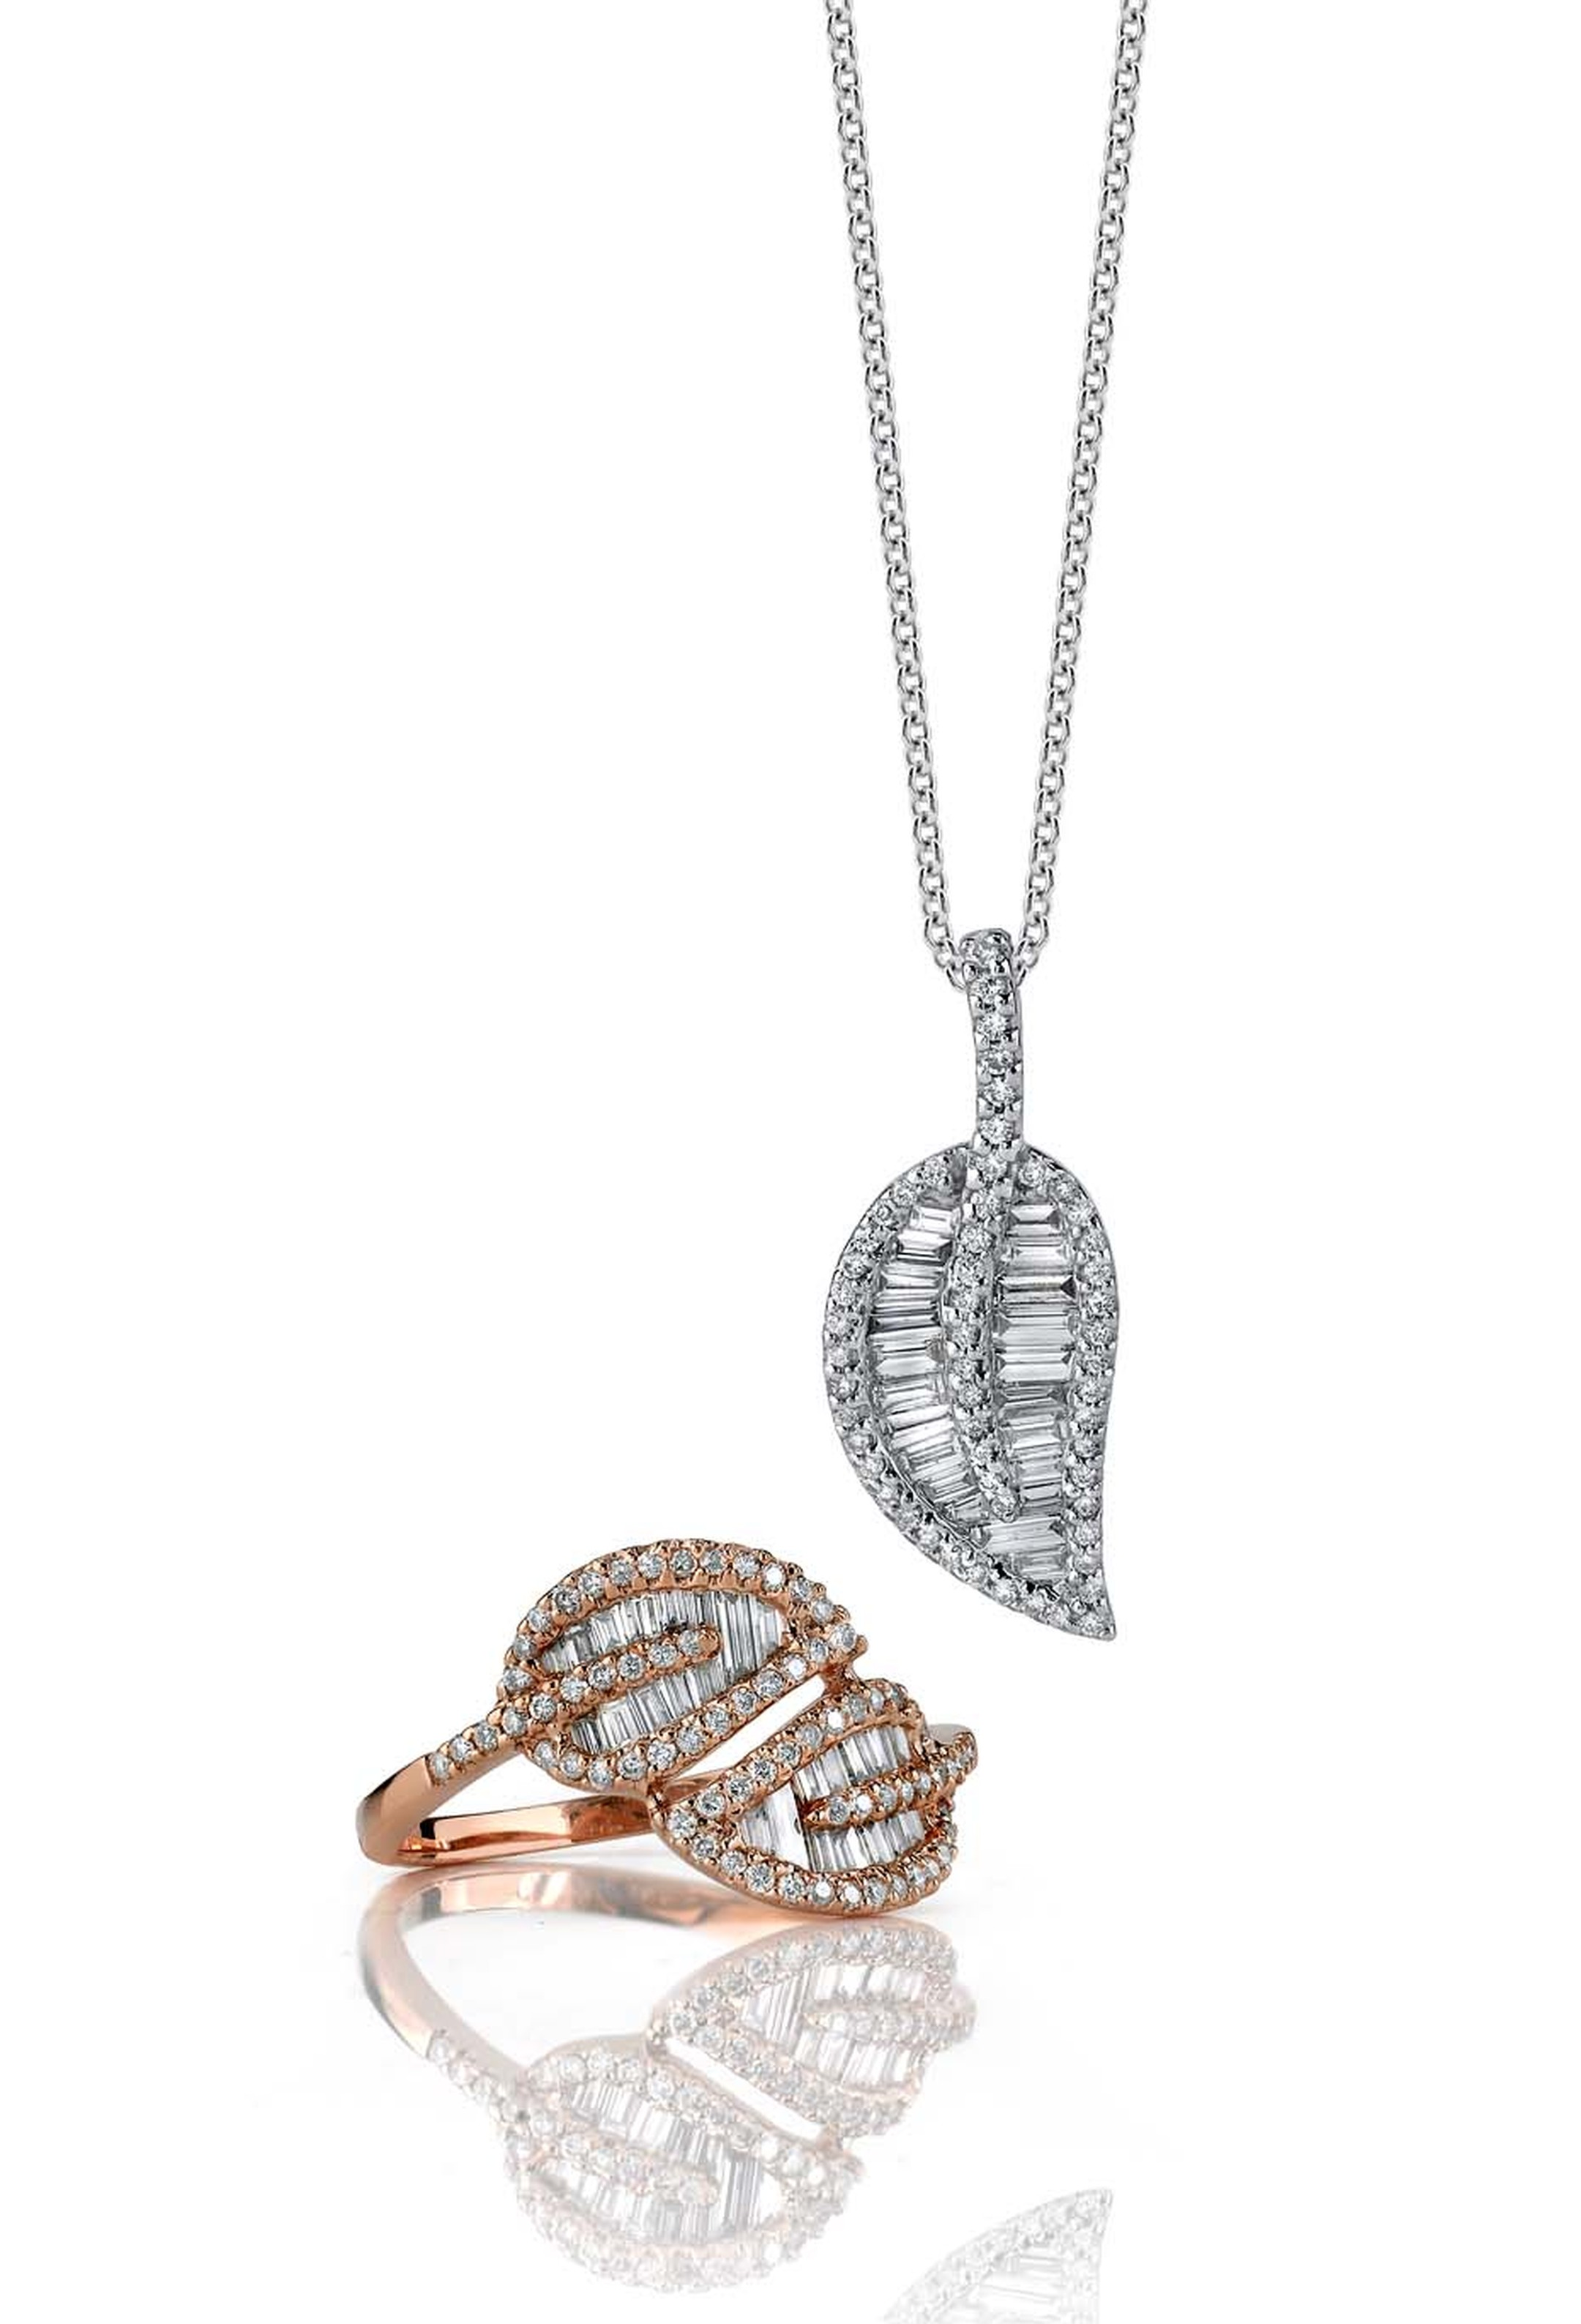 Anita Ko Double Leaf gold and diamond ring and necklace ($4,700 and $3,990).